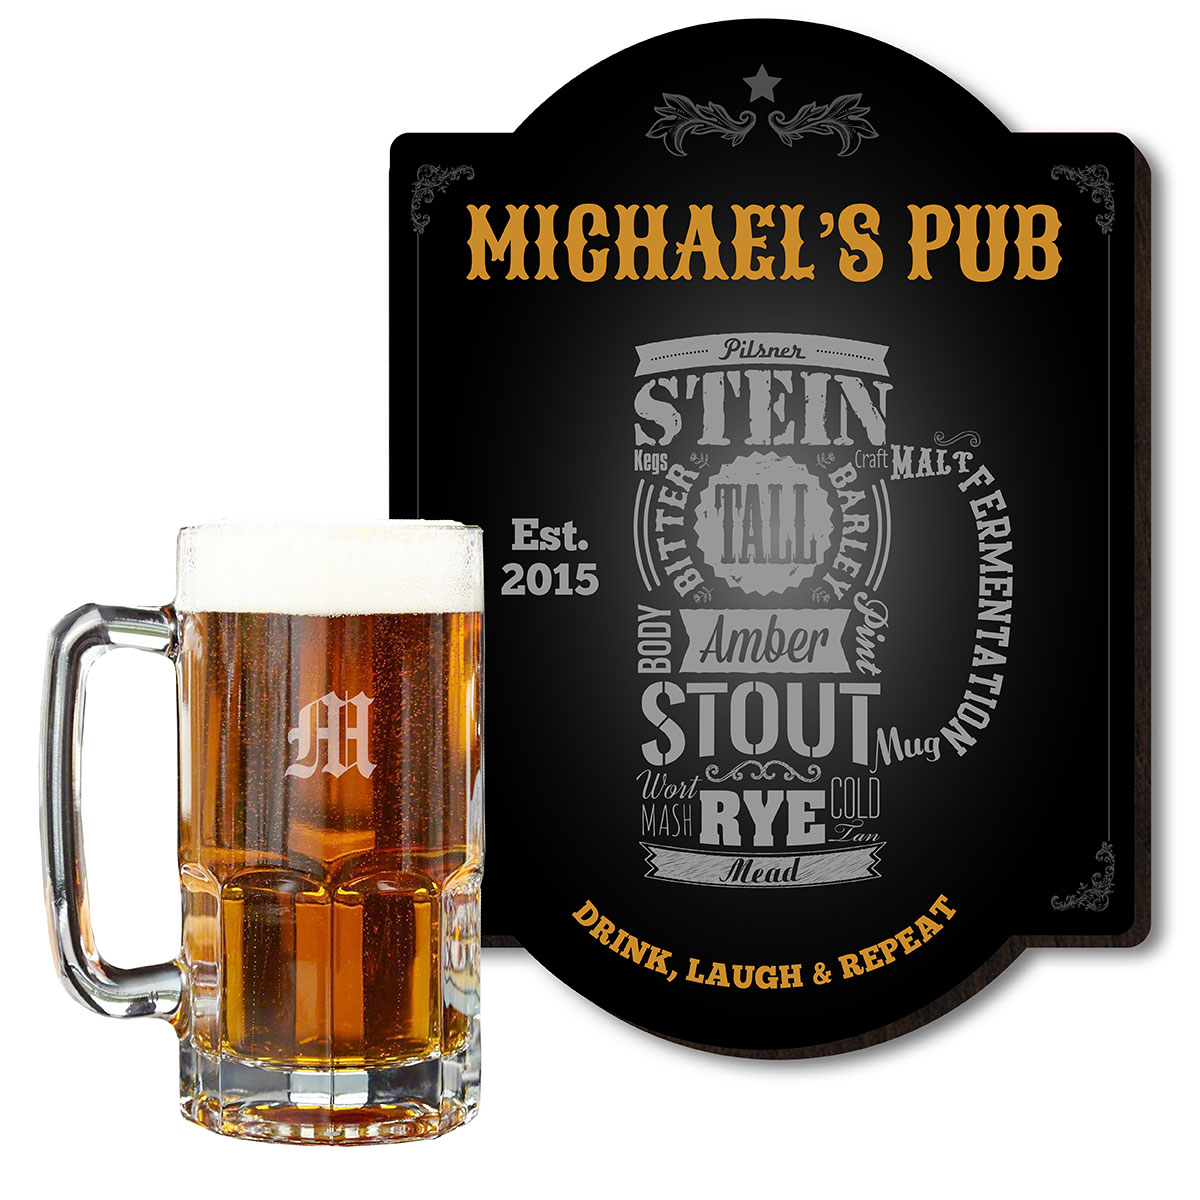 You should be able to show off your love of all things beer in your home bar. No one will be able to doubt your passion with this personalized Modern Beer bar sign and colossal beer mug. These combo sets are the best beer gifts for men on birthdays, holid #mug